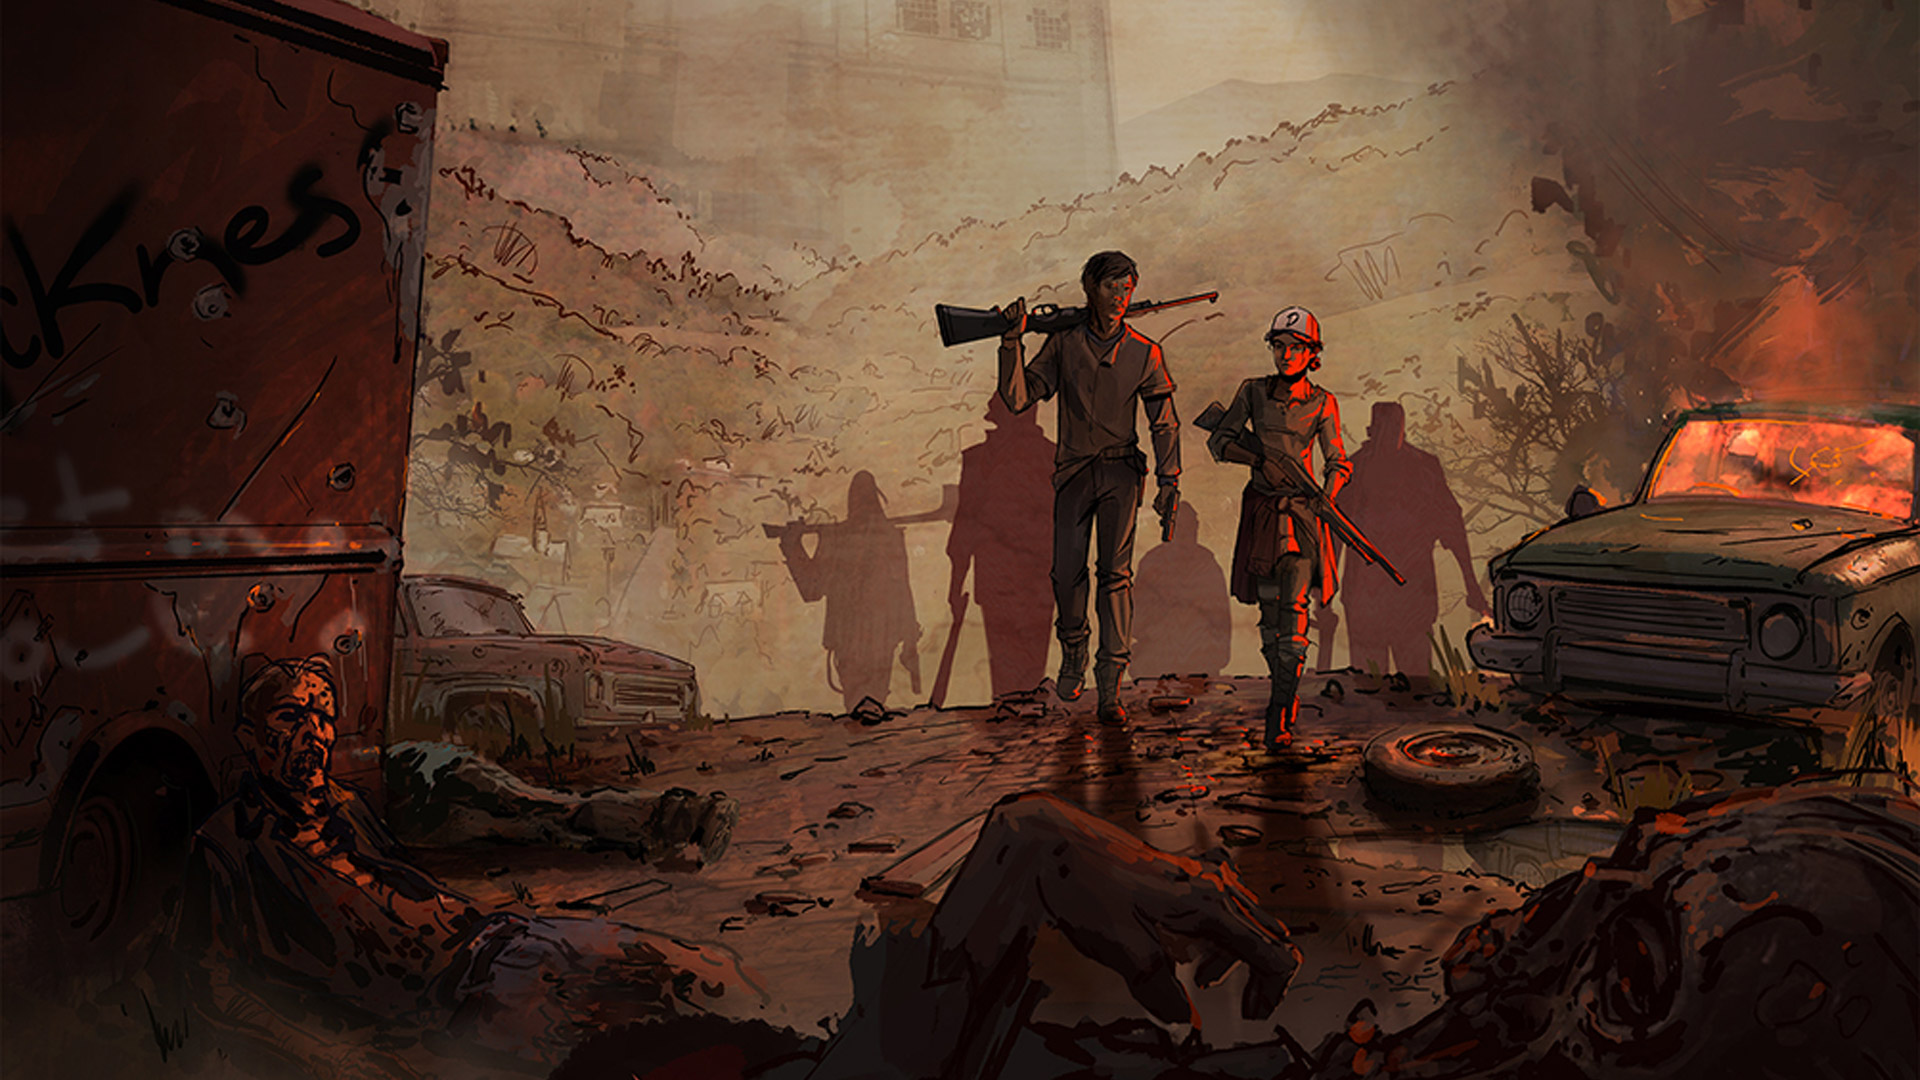 The Walking Dead: A New Frontier Wallpaper in 1920x1080